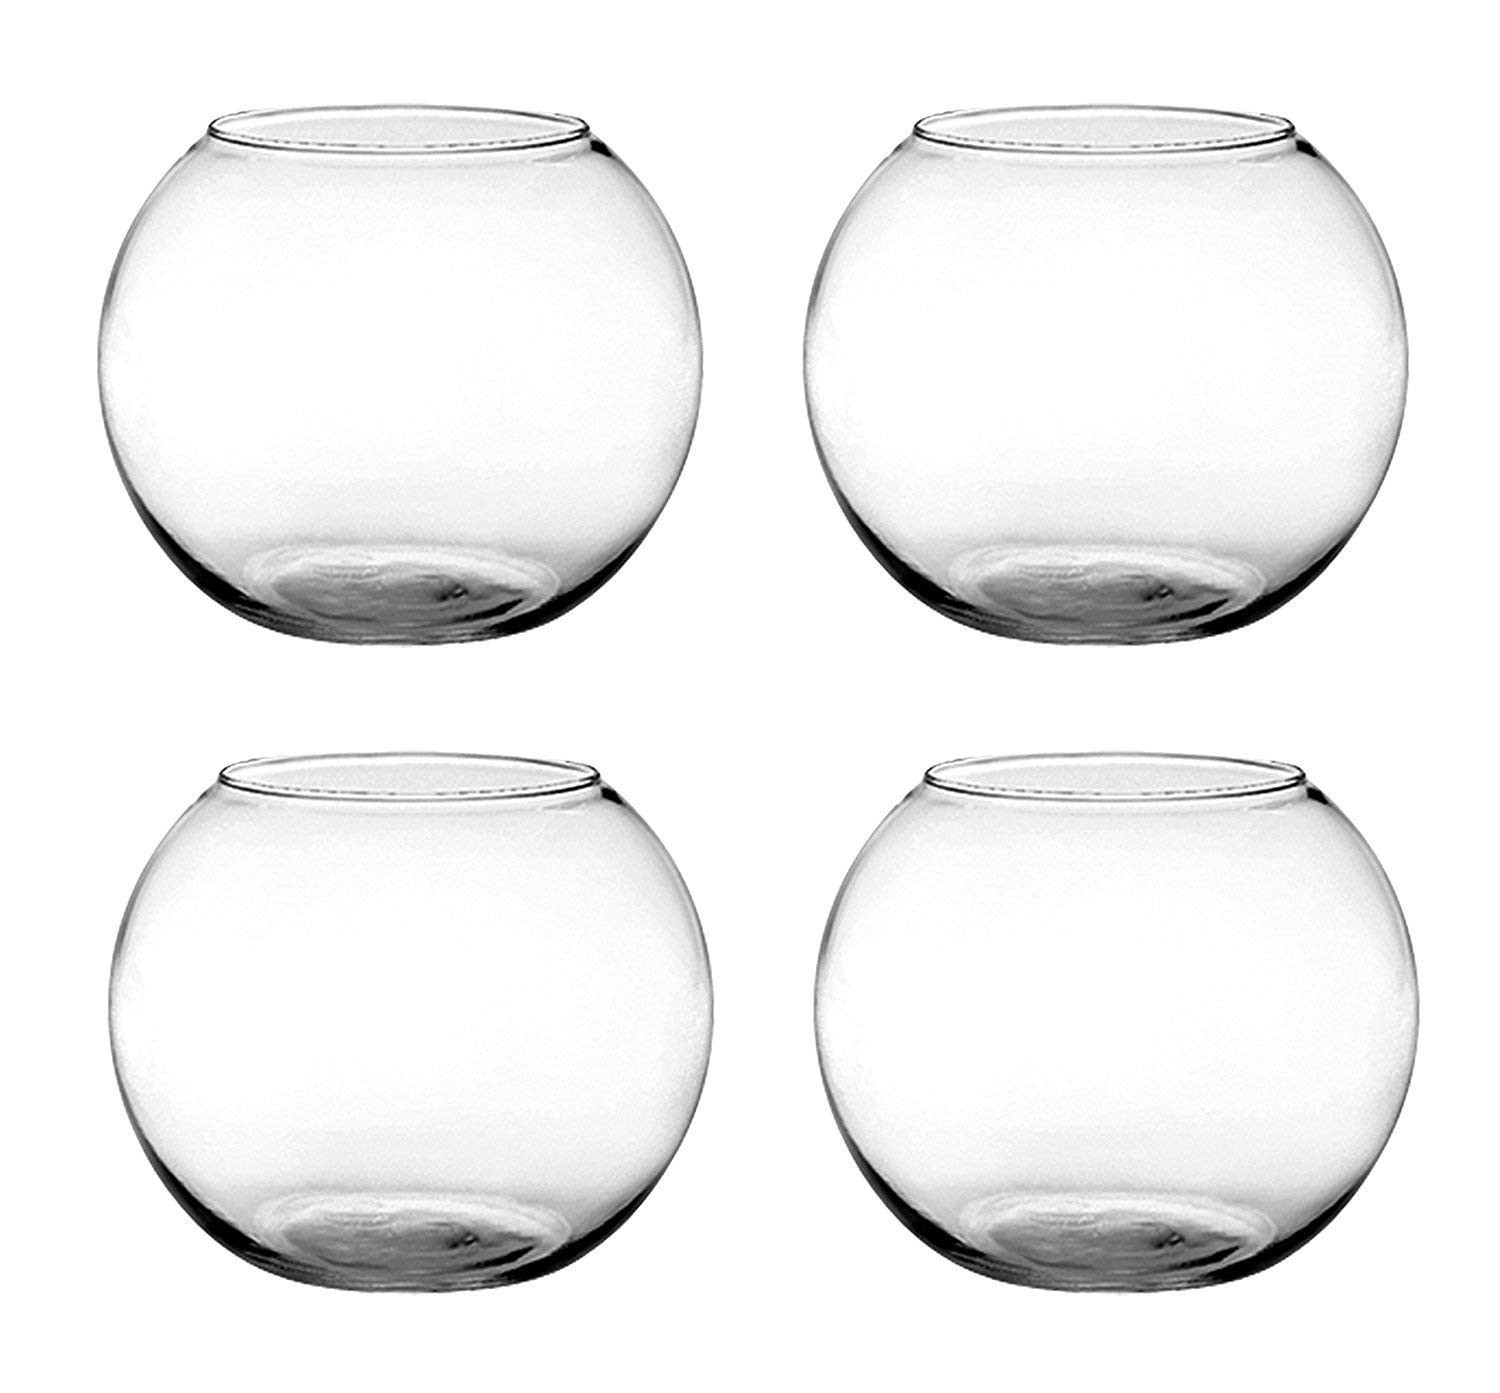 flower vase with candle holder of amazon com floral supply online set of 4 6 rose bowls glass in amazon com floral supply online set of 4 6 rose bowls glass round vases for weddings events decorating arrangements flowers office